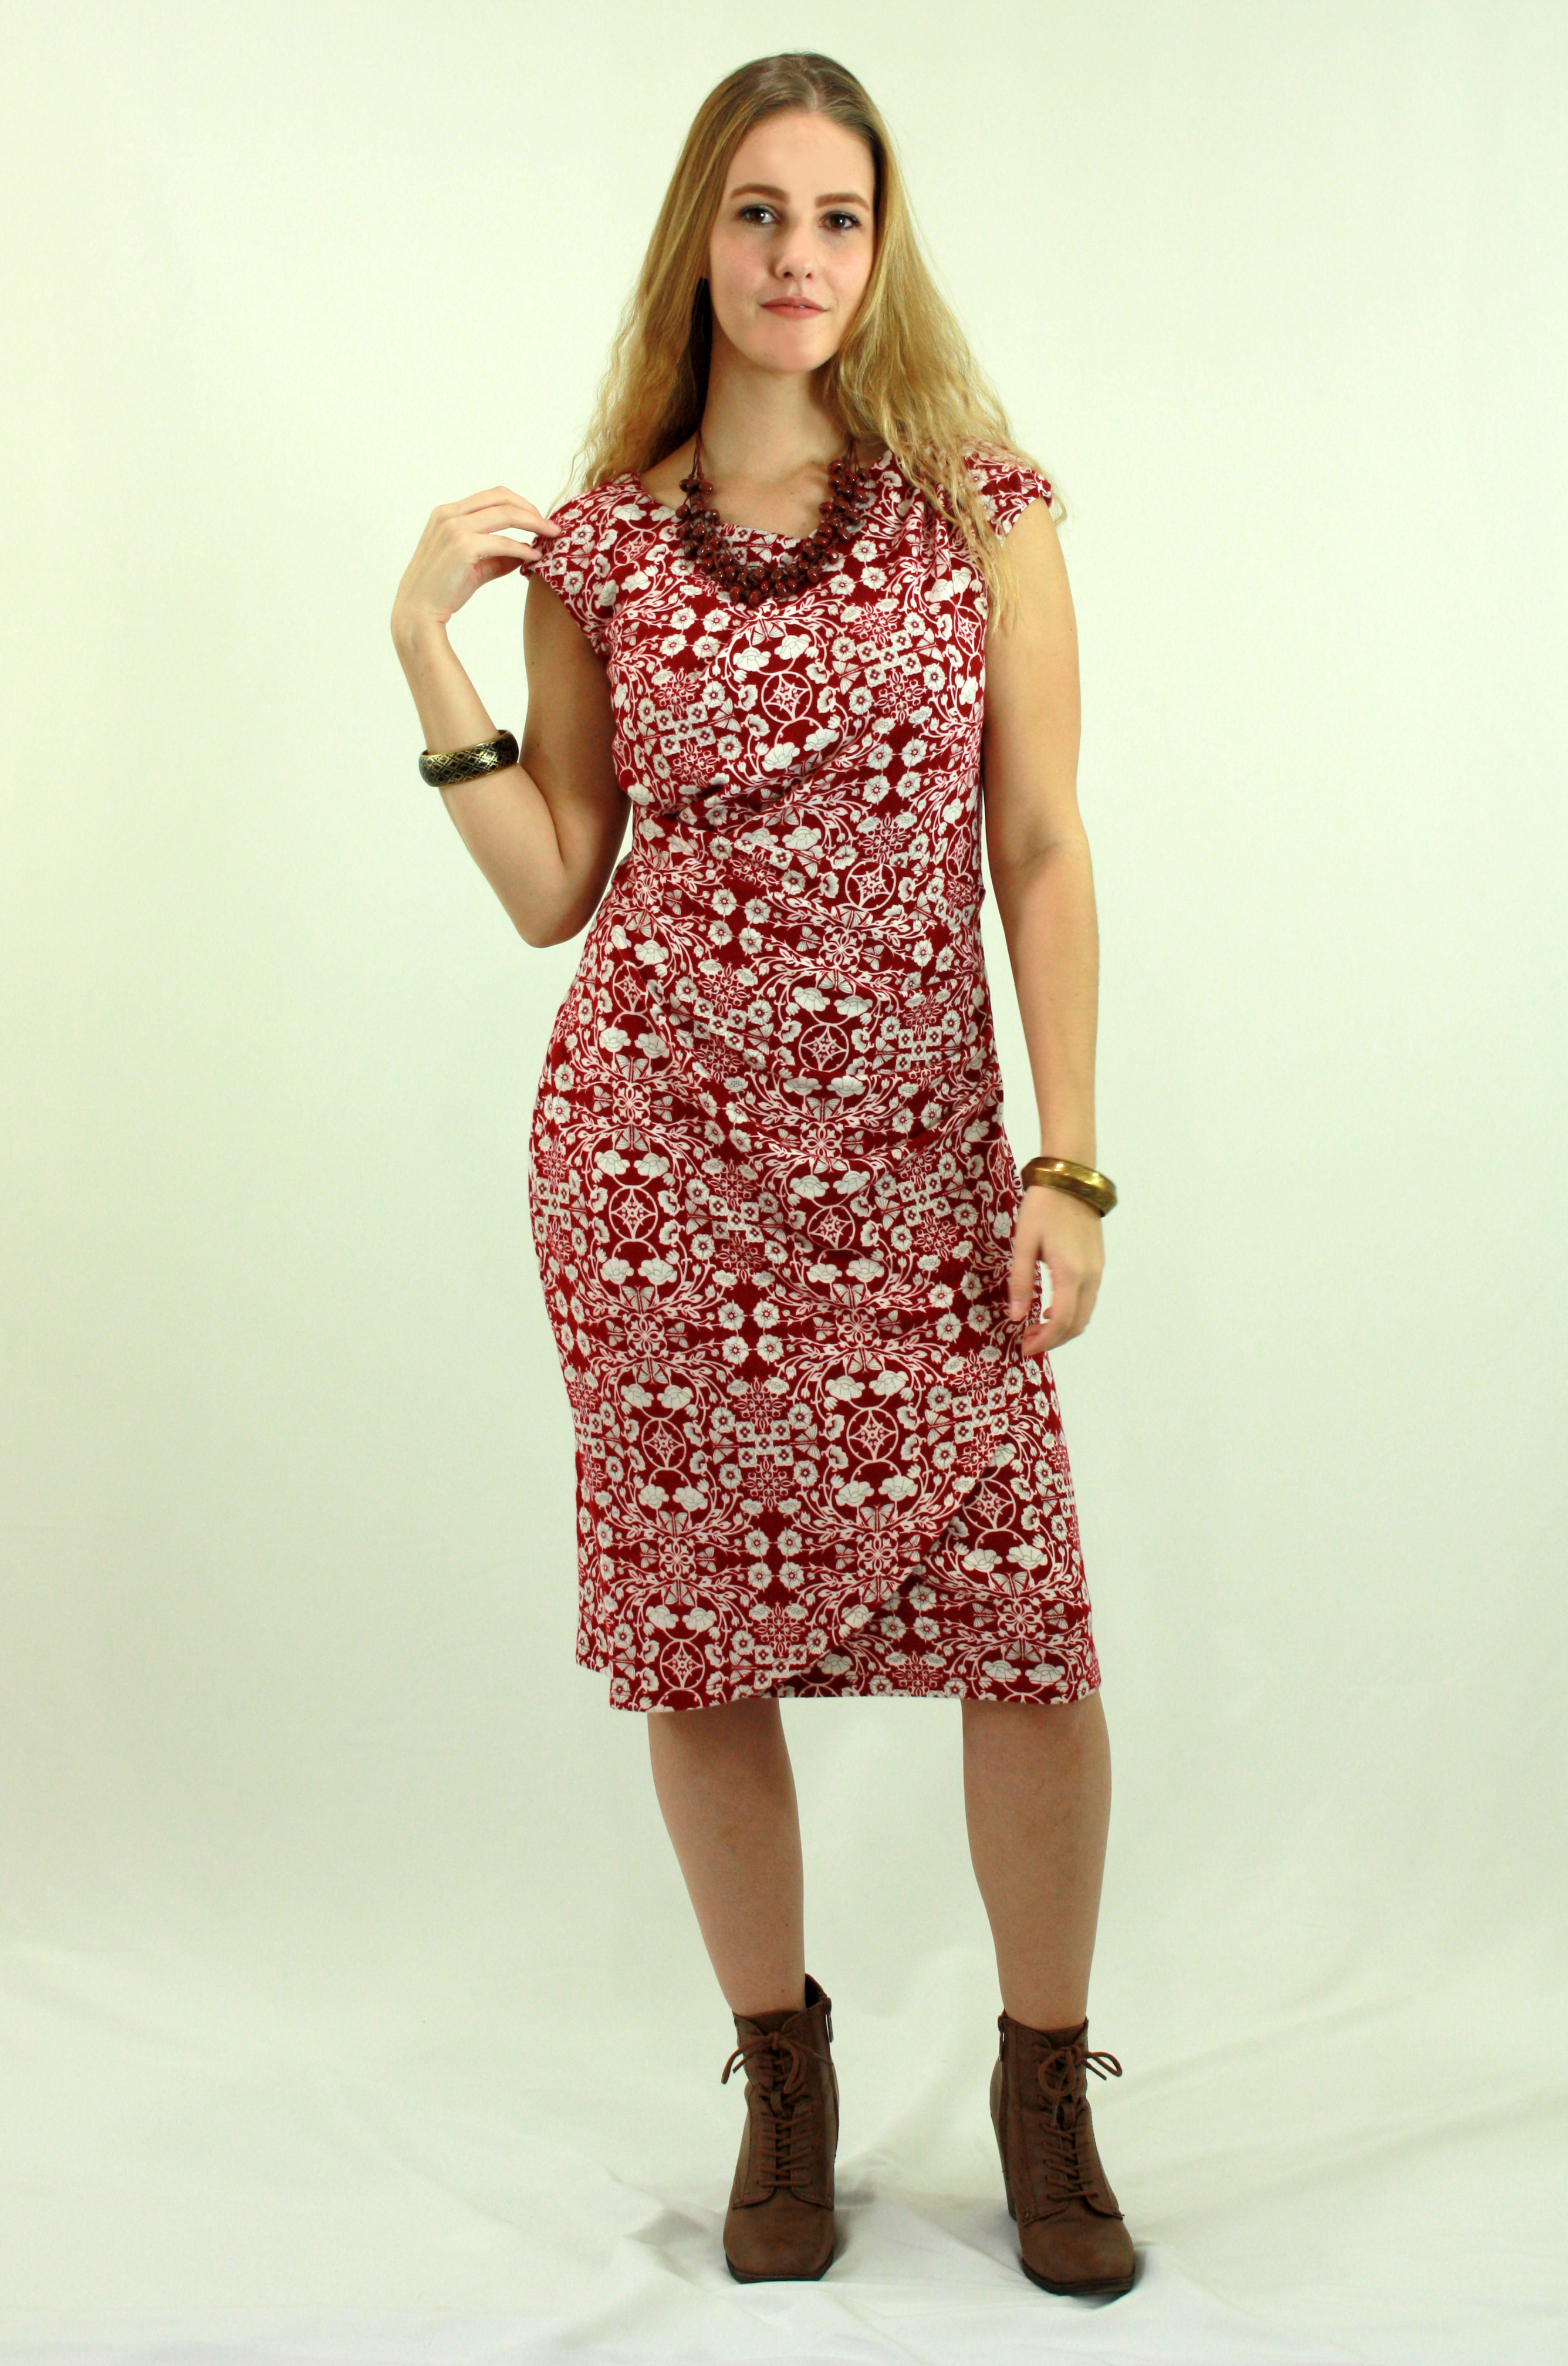 dress for women